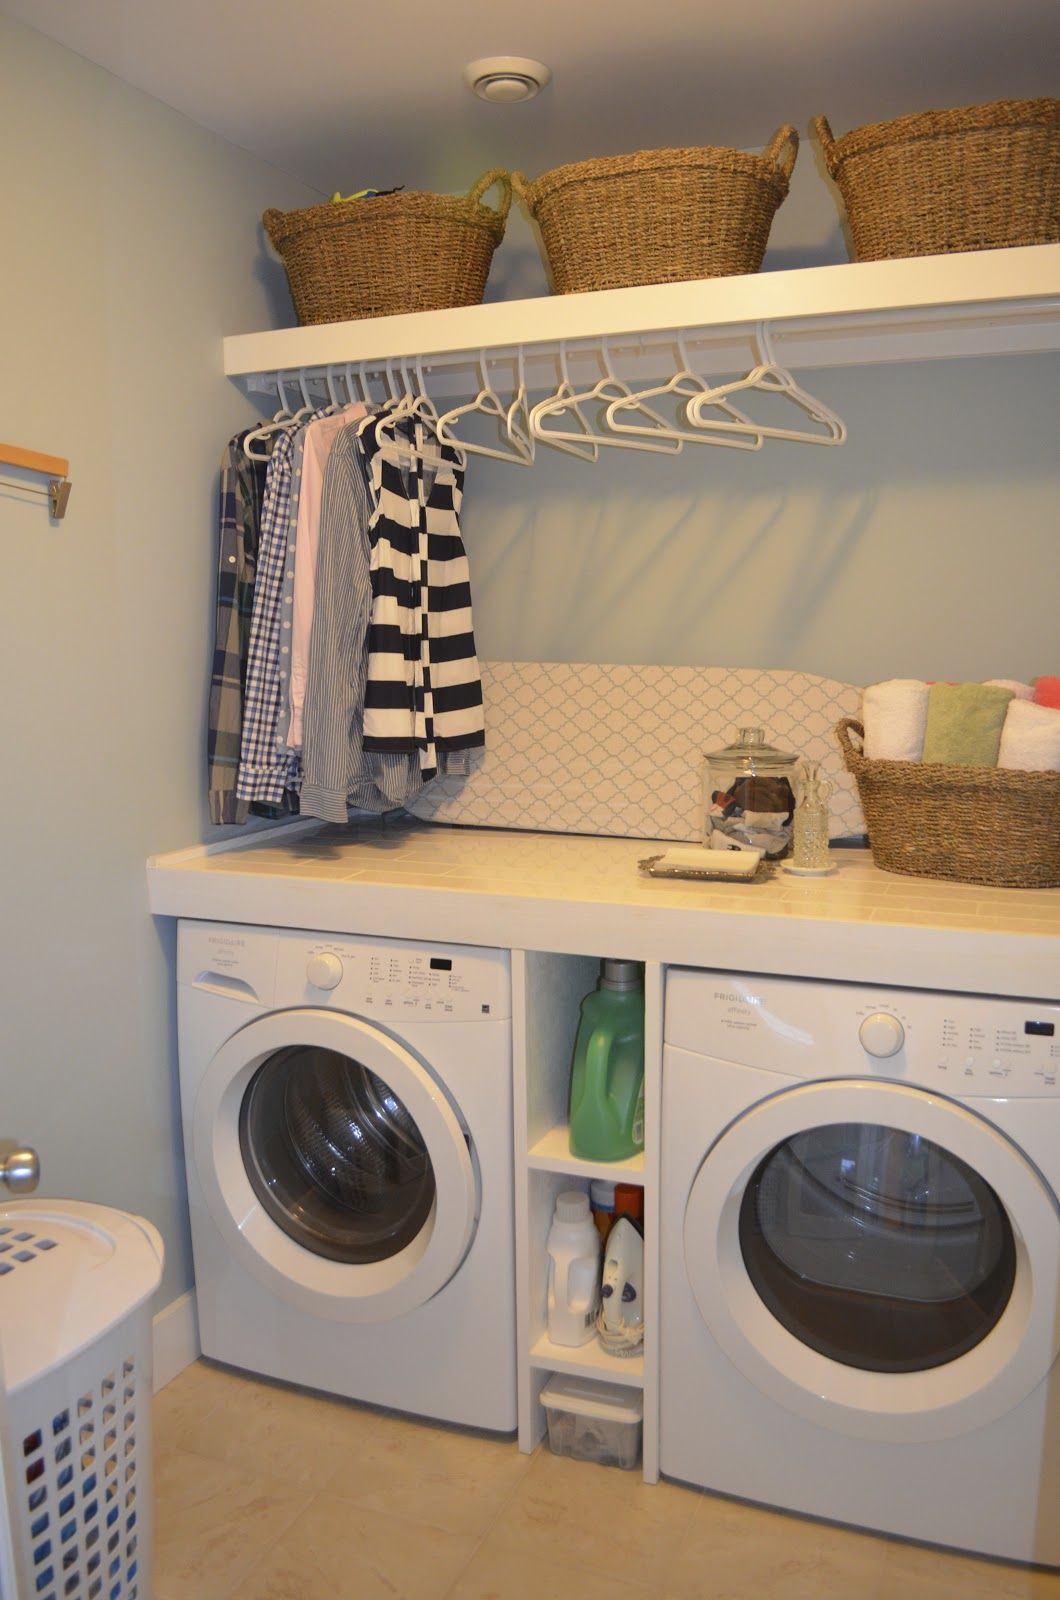 Could totally make this work in our small laundry room closet for